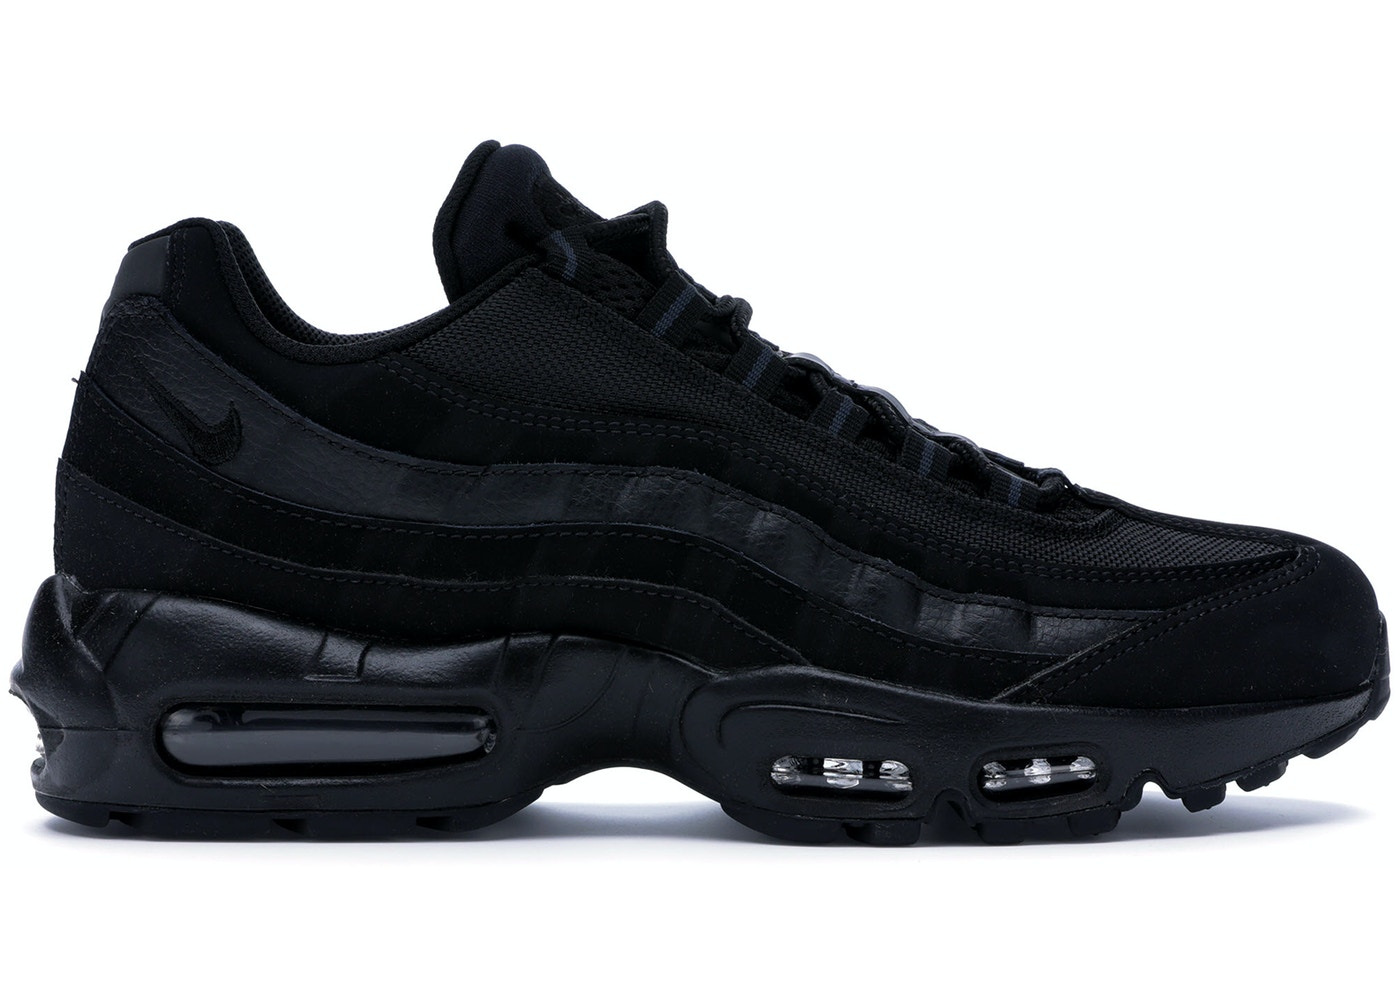 wholesale dealer 3654f cea0b Buy Nike Air Max 95 Shoes & Deadstock Sneakers